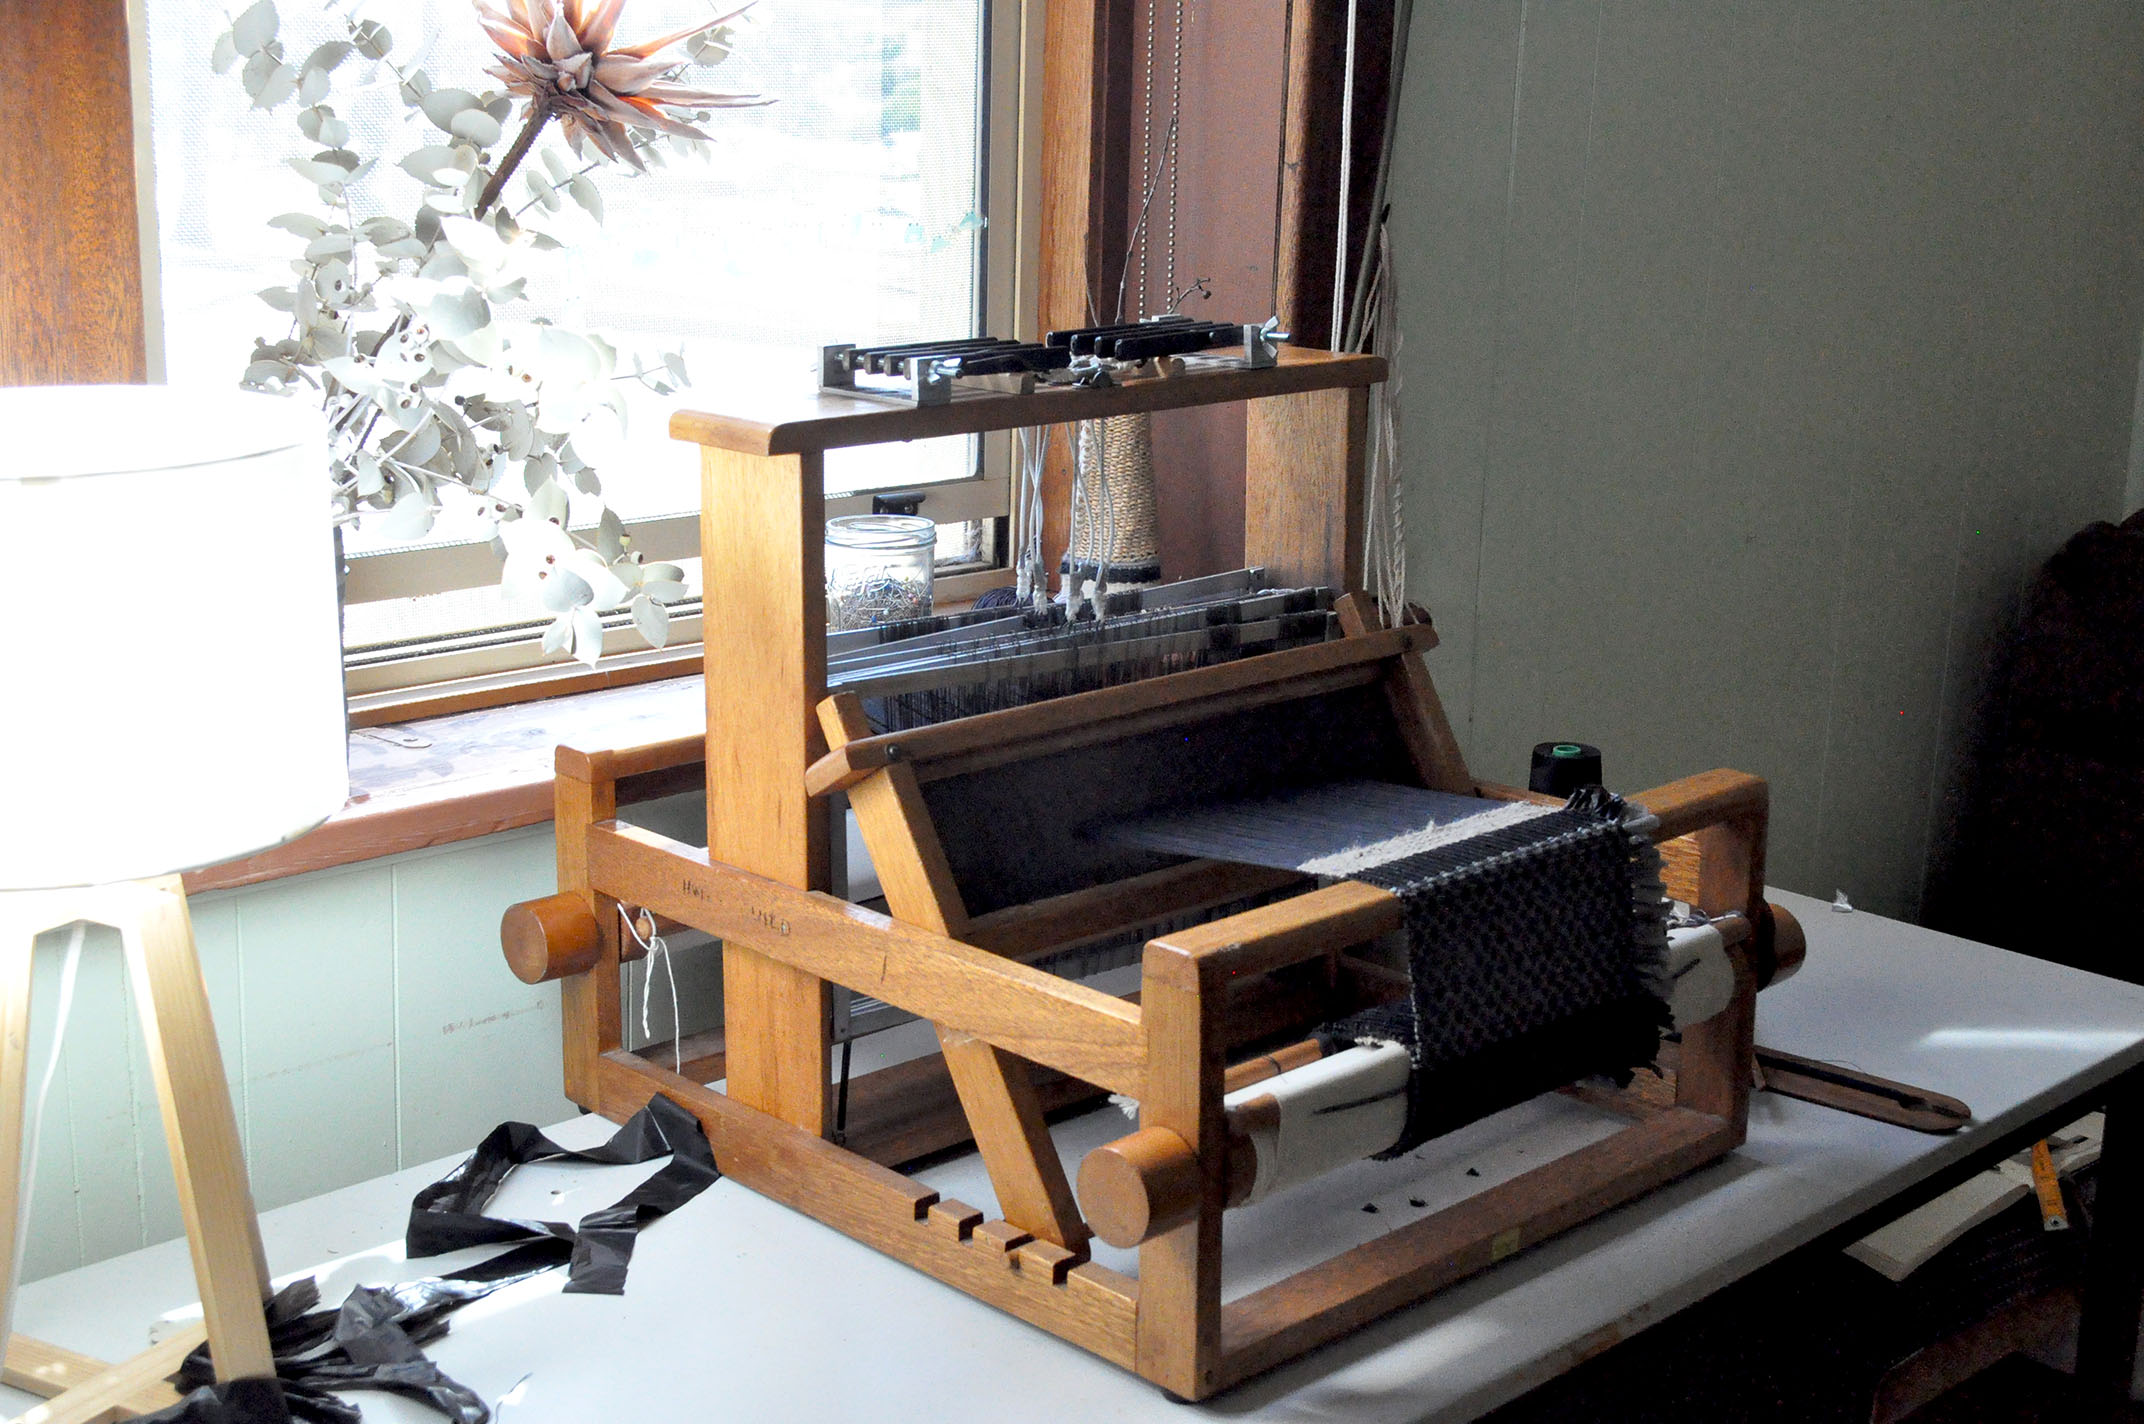 Blake uses this 8 shaft table loom to weave together natural and synthetic materials for his woven creations.